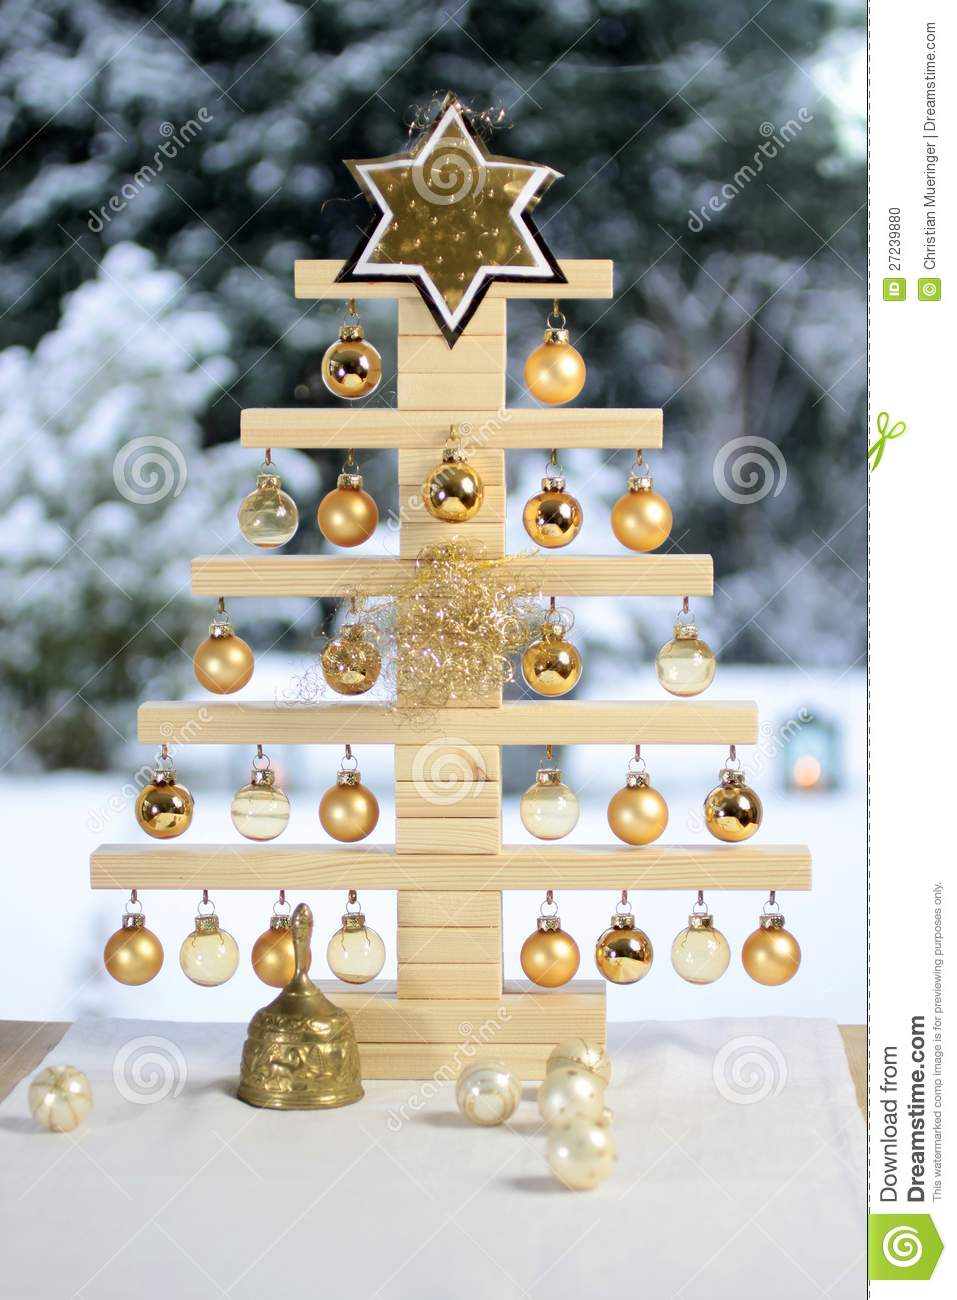 Home Made Wooden Christmas Tree Stock Photo Image 27239880